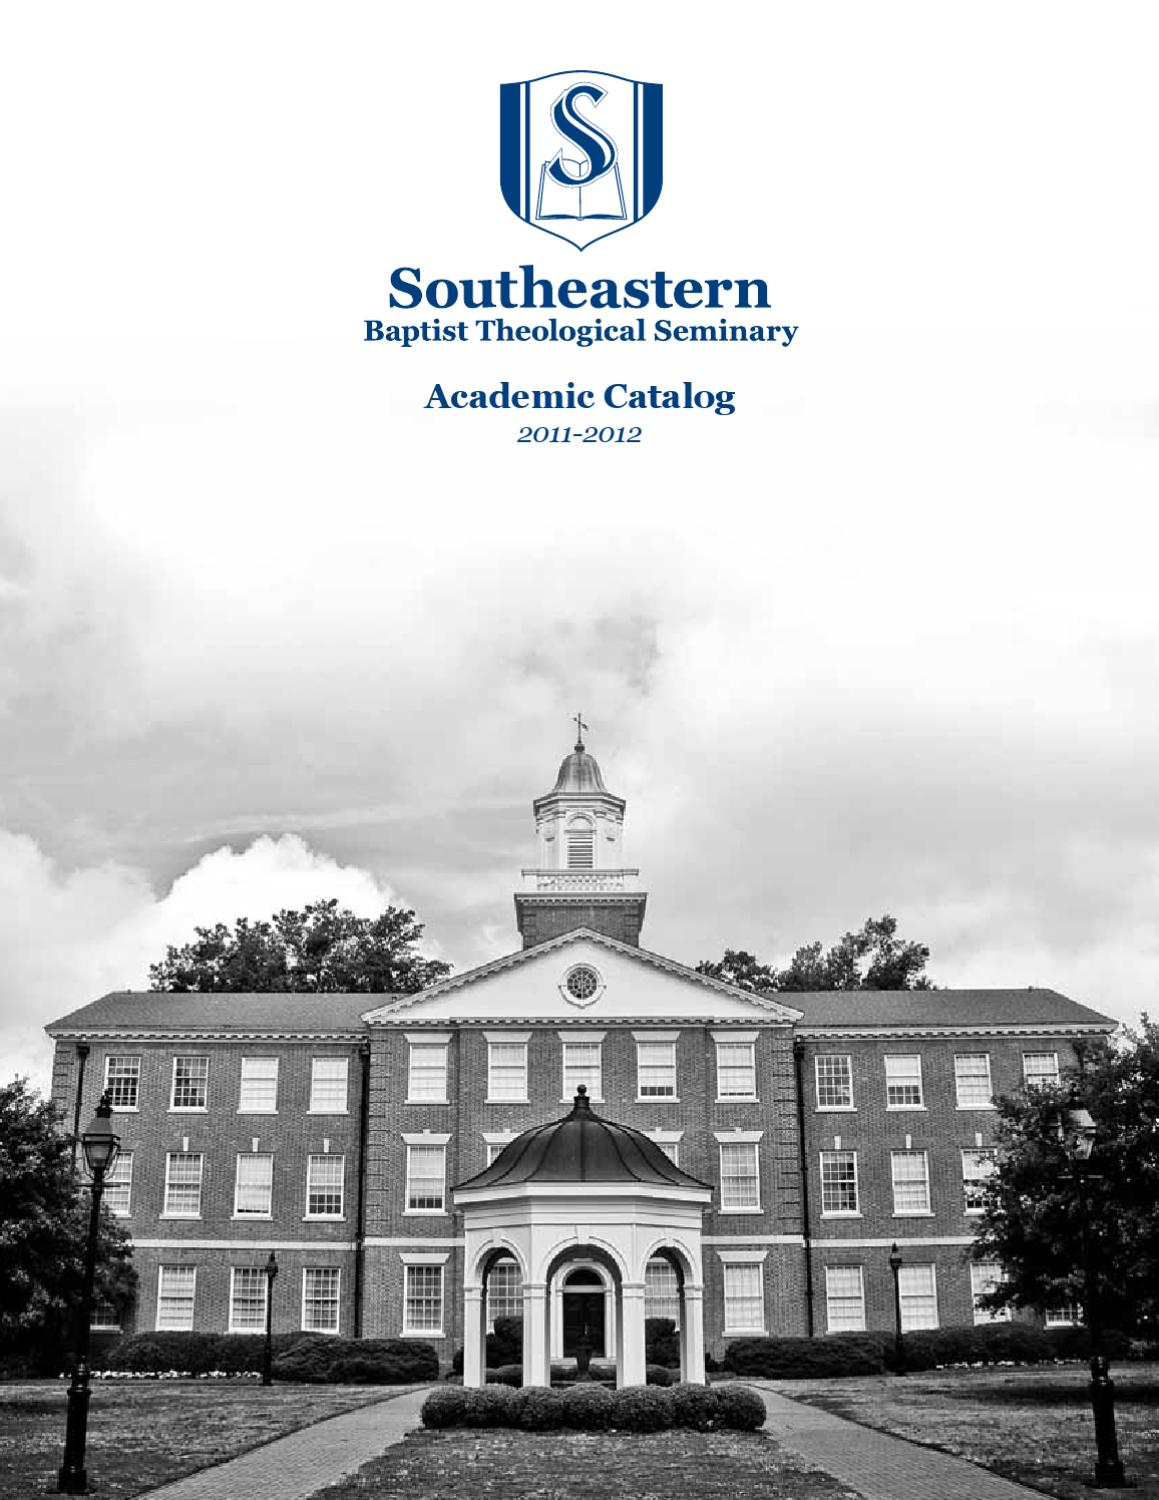 liberty baptist theological seminary Southeastern baptist theological seminary (sebts) is a seminary of the southern baptist convention (sbc), created to meet a need in the sbc's east coast region it was voted into existence on may 19, 1950.